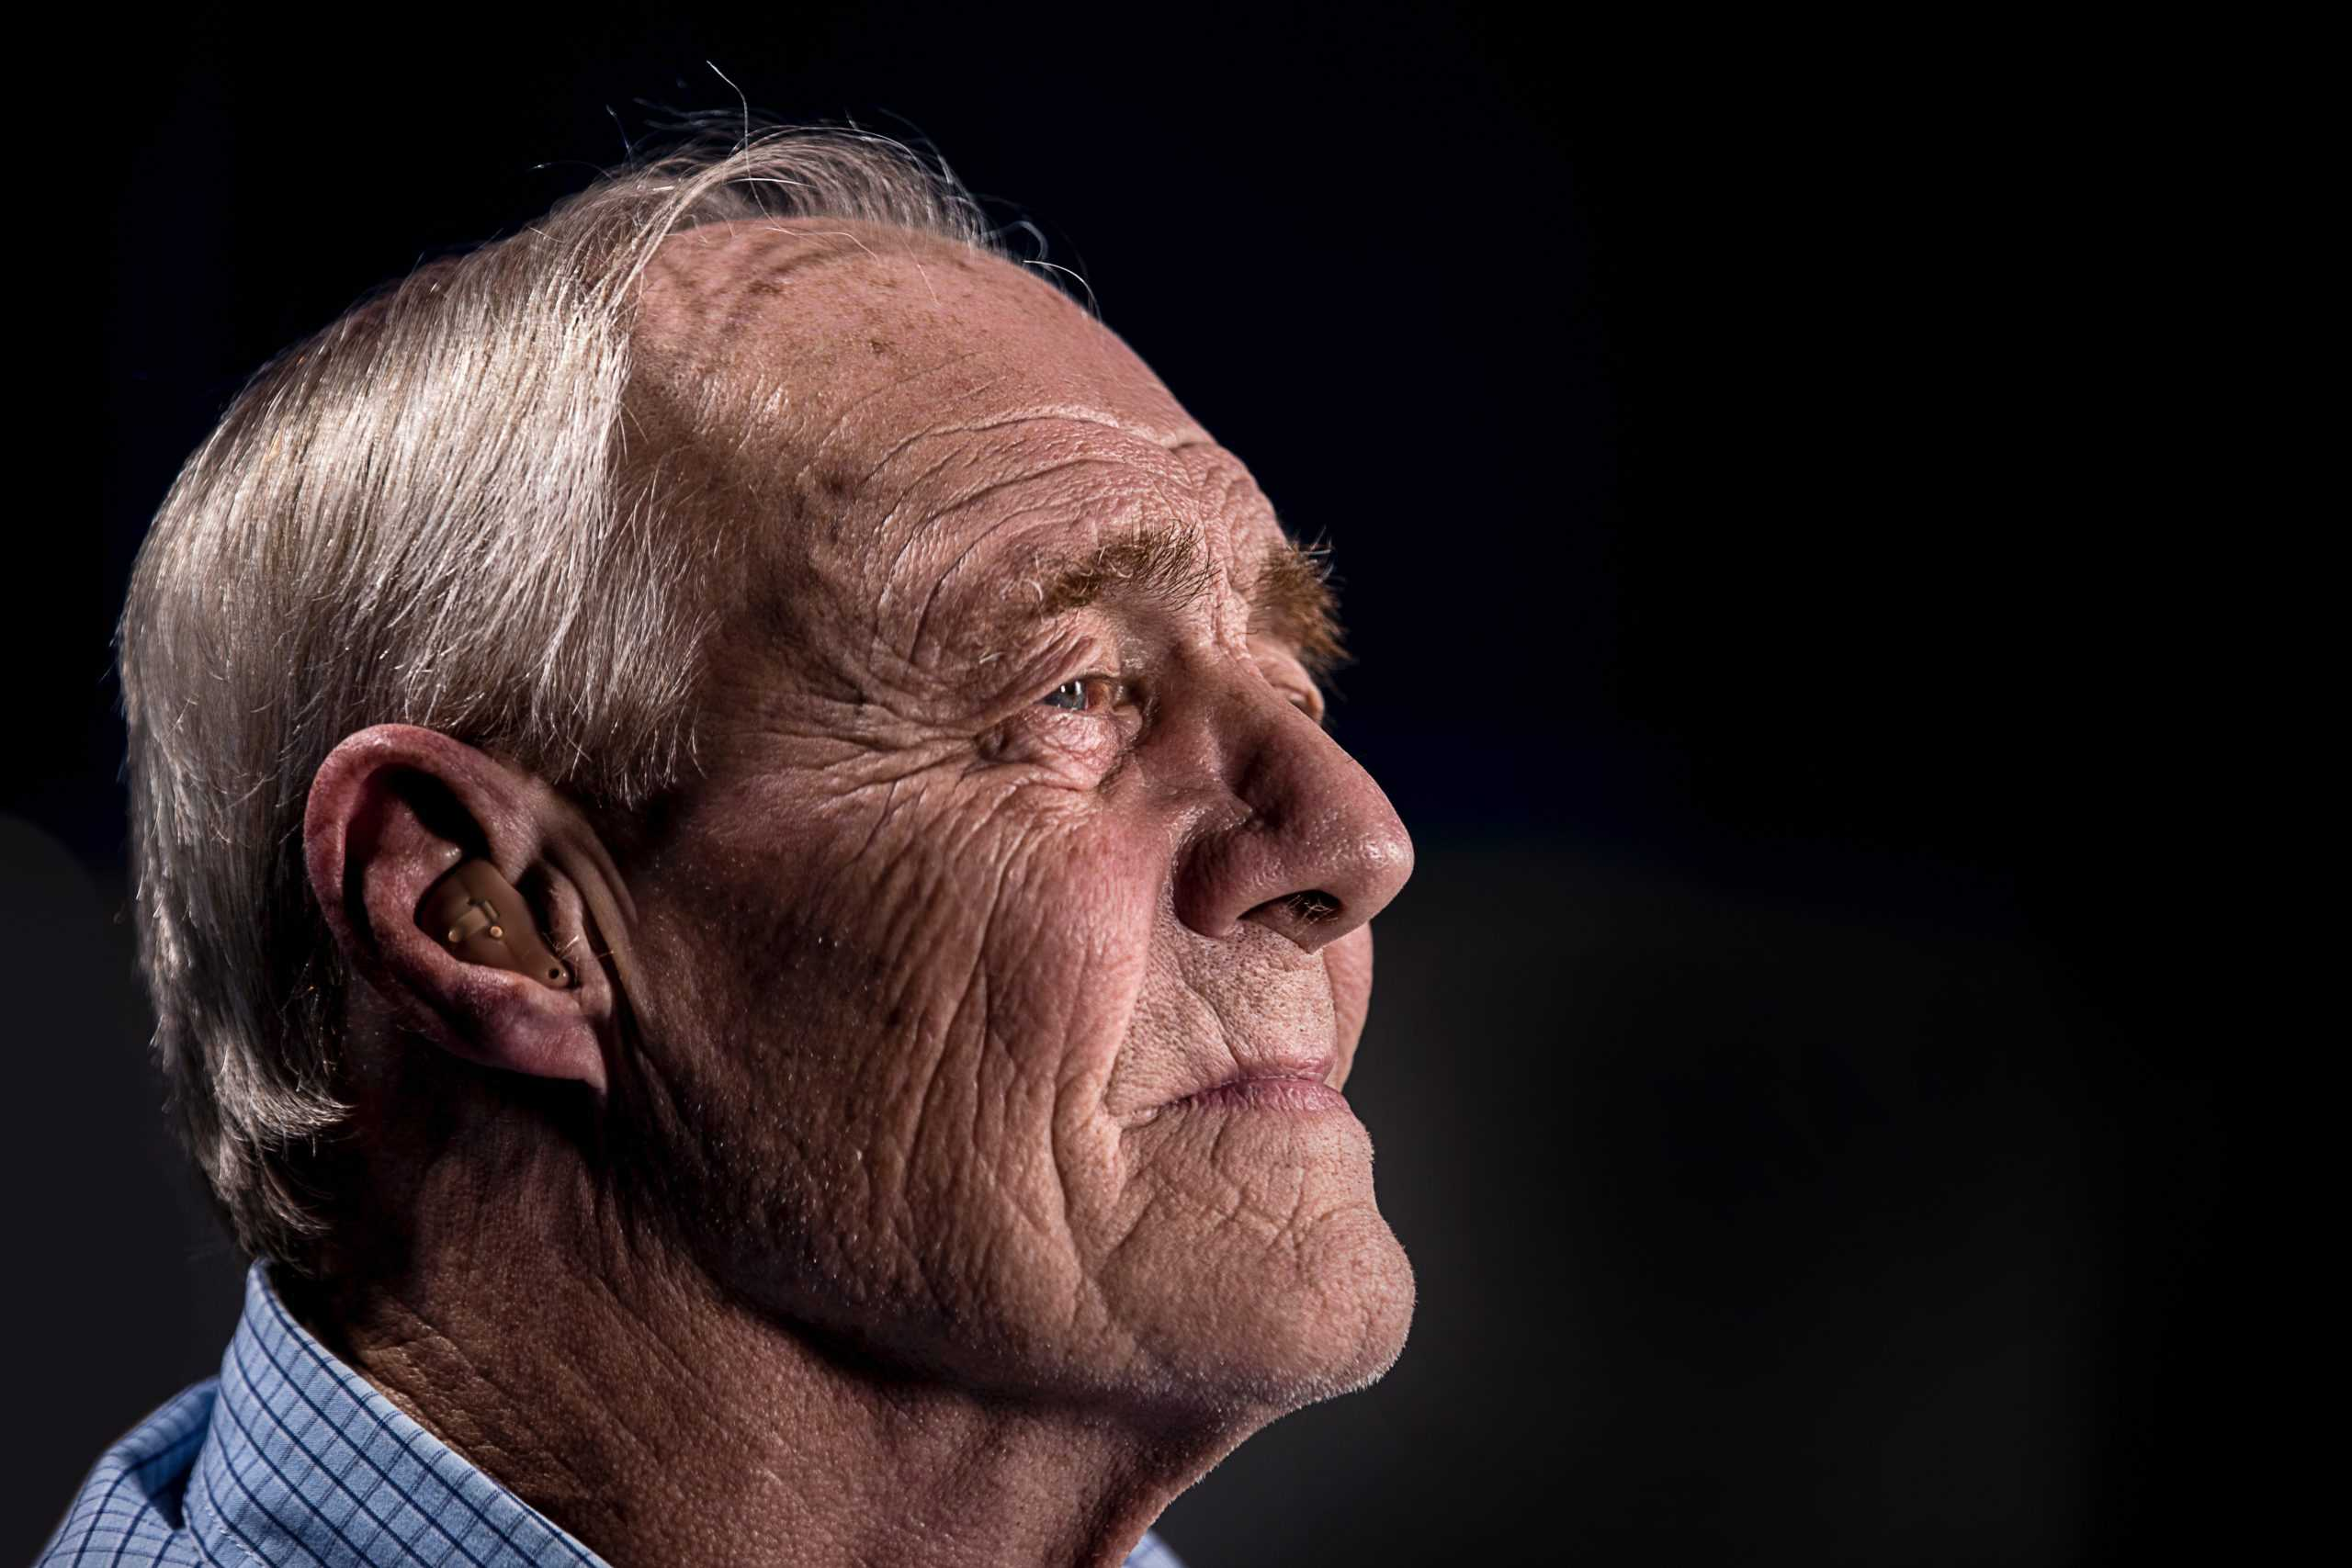 Understanding What It's Like To Live With Alzheimer's